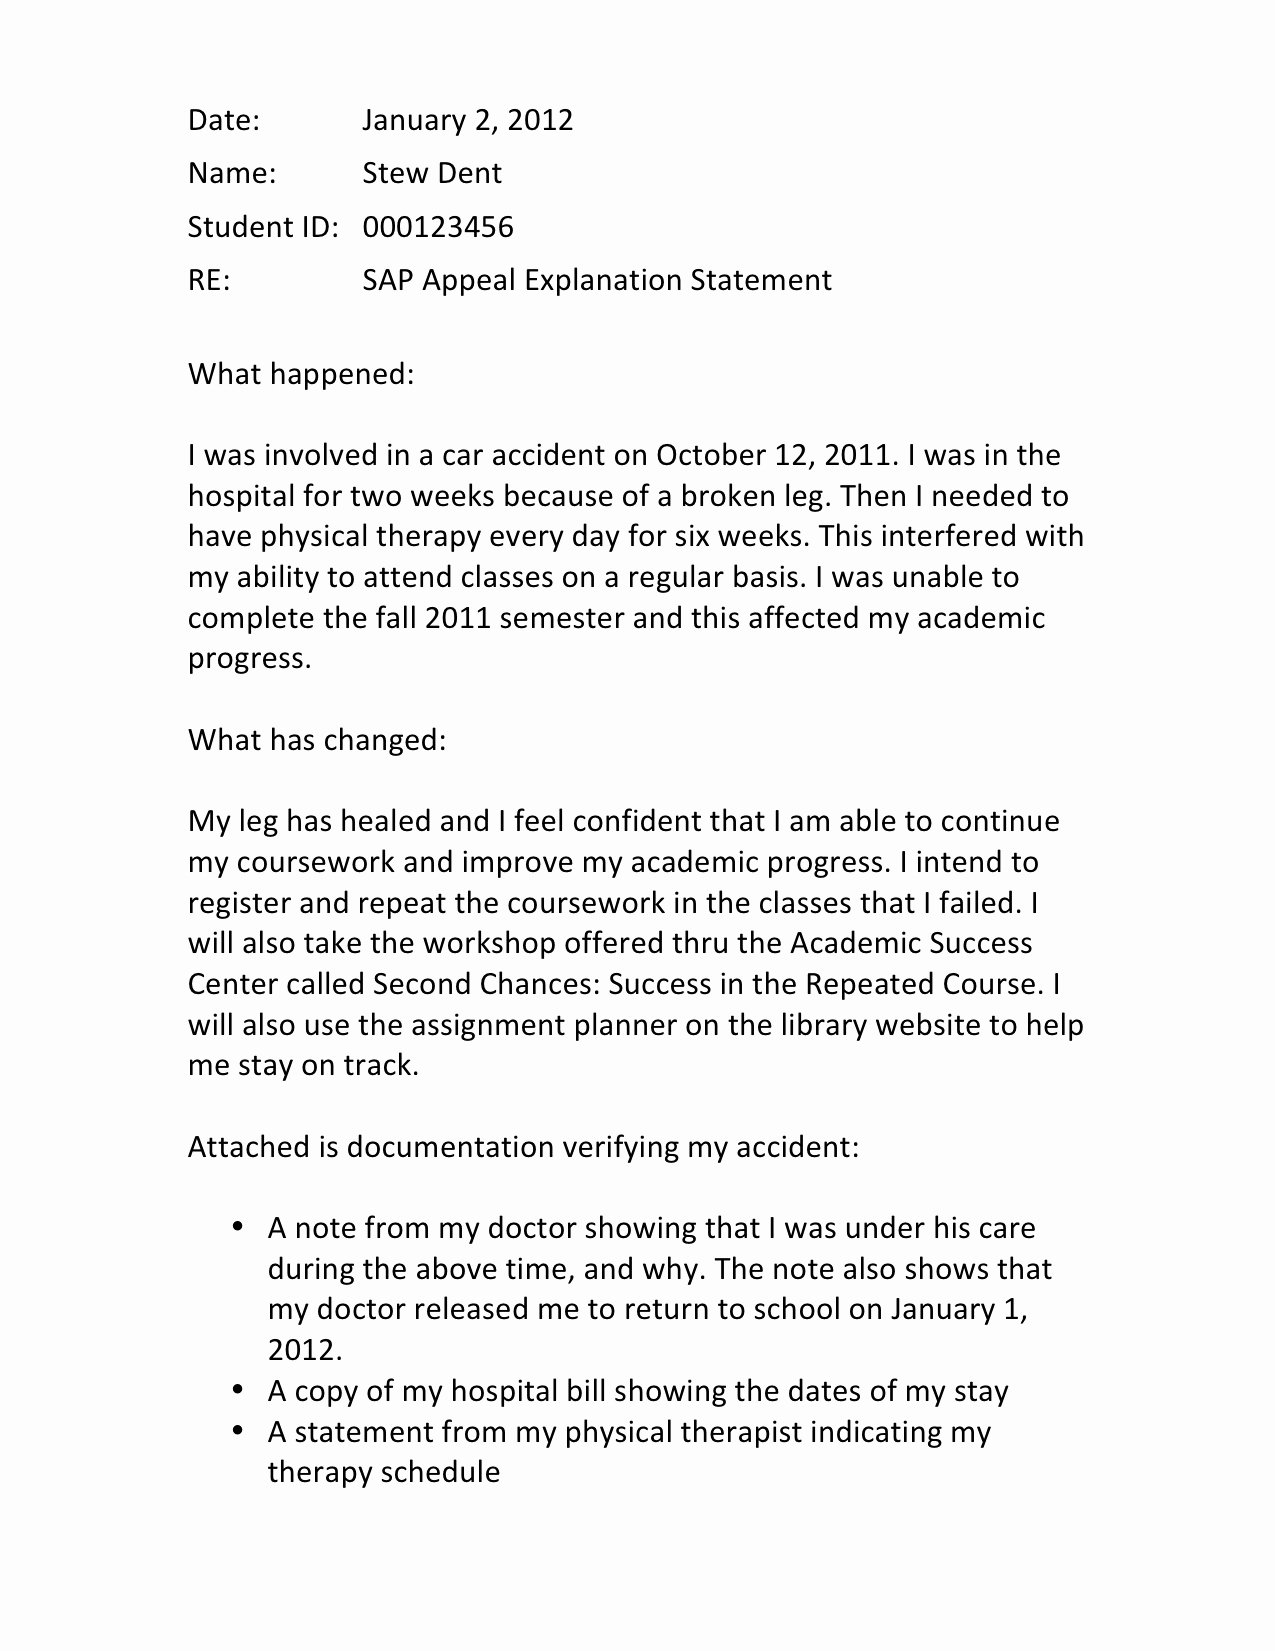 Financial Aid Appeal Letter format New Writing A Successful Sap Appeal Financial Aid Wayne